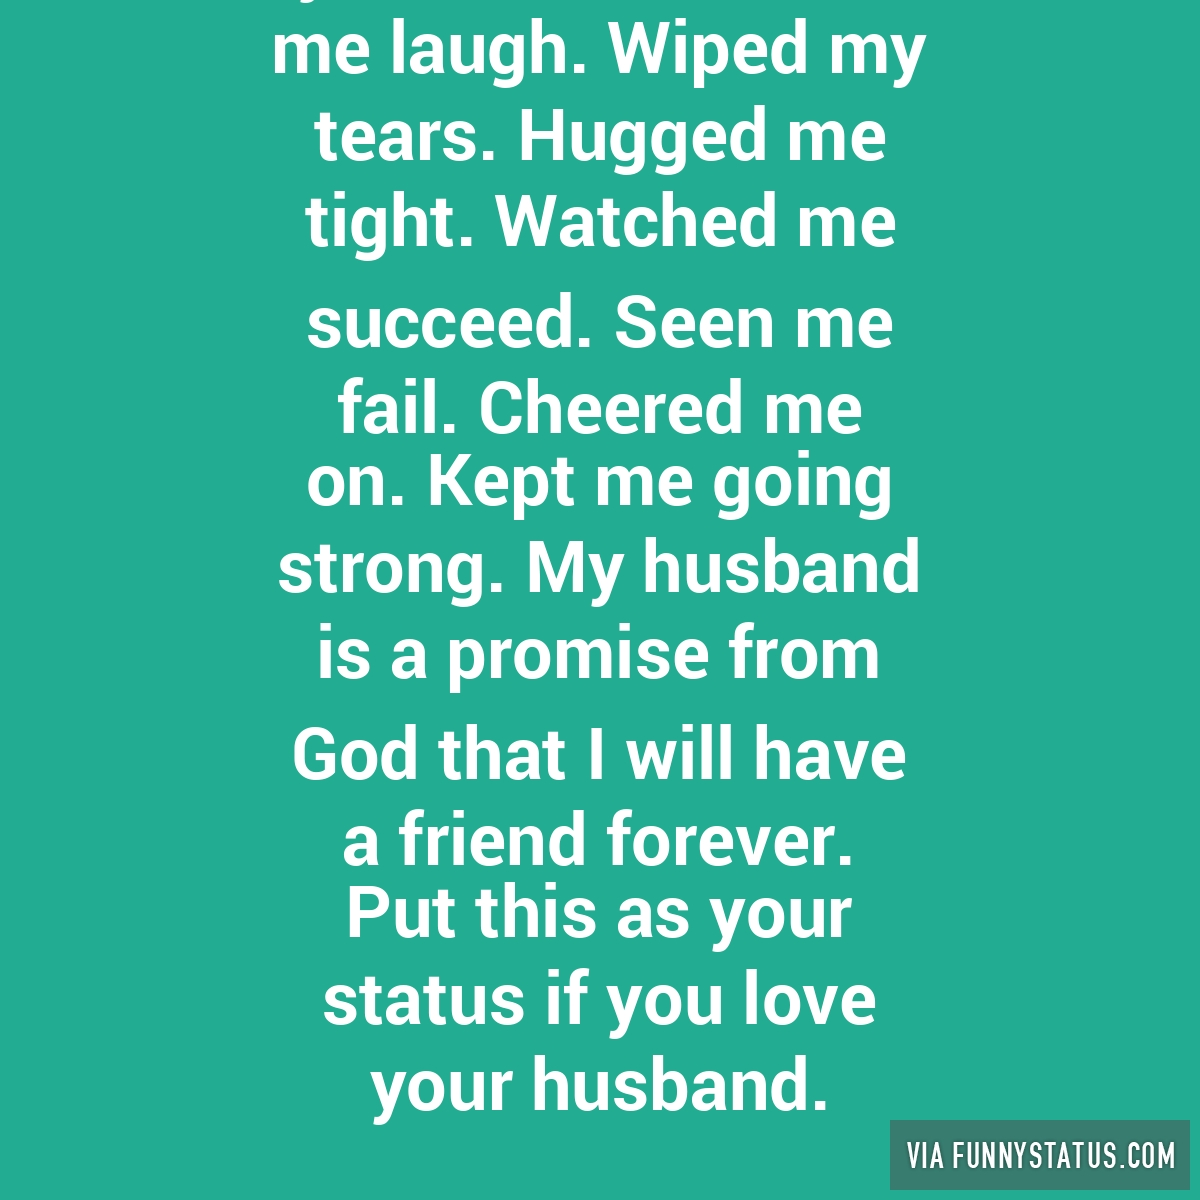 my husband has made me laugh wiped my tears hugged 3904 my husband has made me laugh wiped my tears hugged funny status